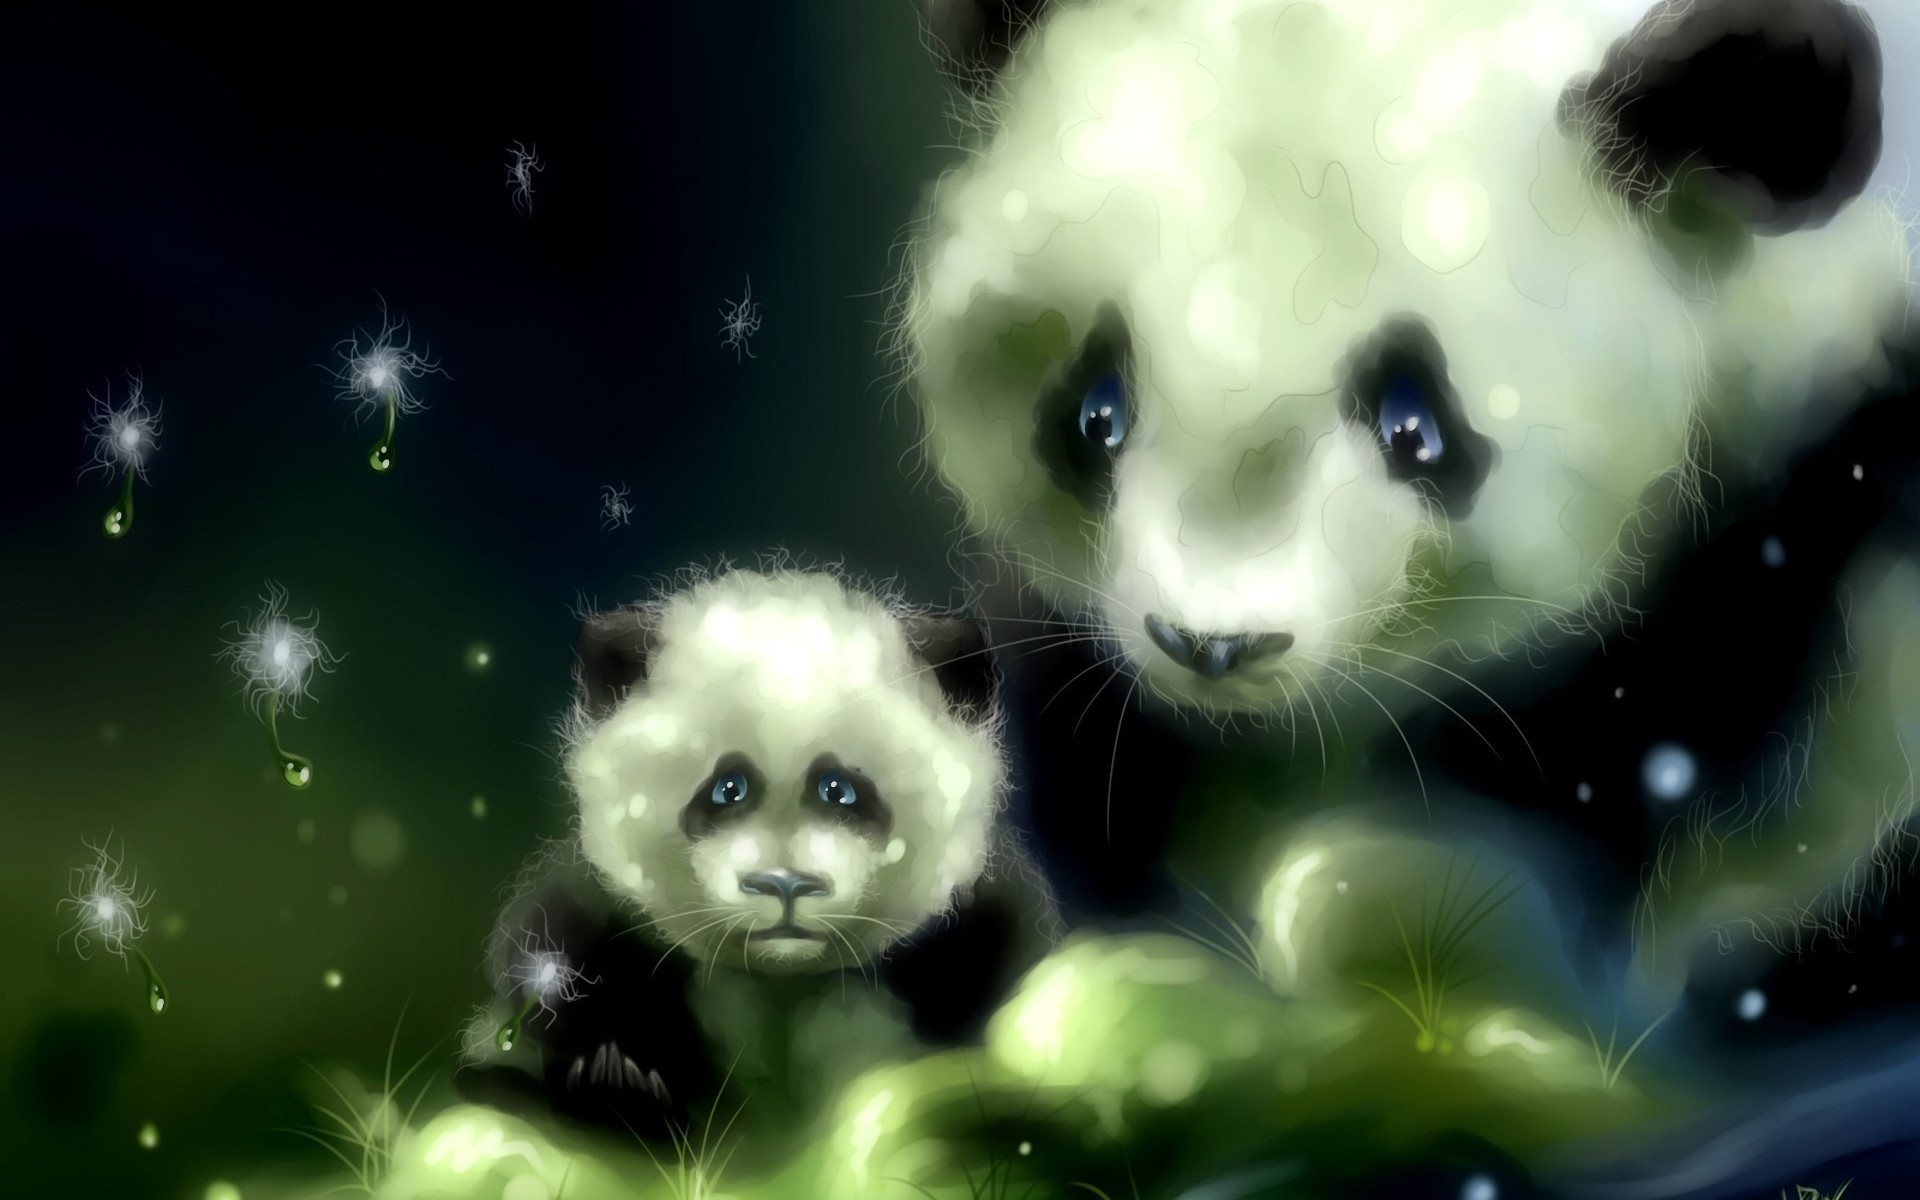 Panda Wallpaper Cartoon Desktop U Funny Things Rhcom Wallpapers Hd Cute Angry